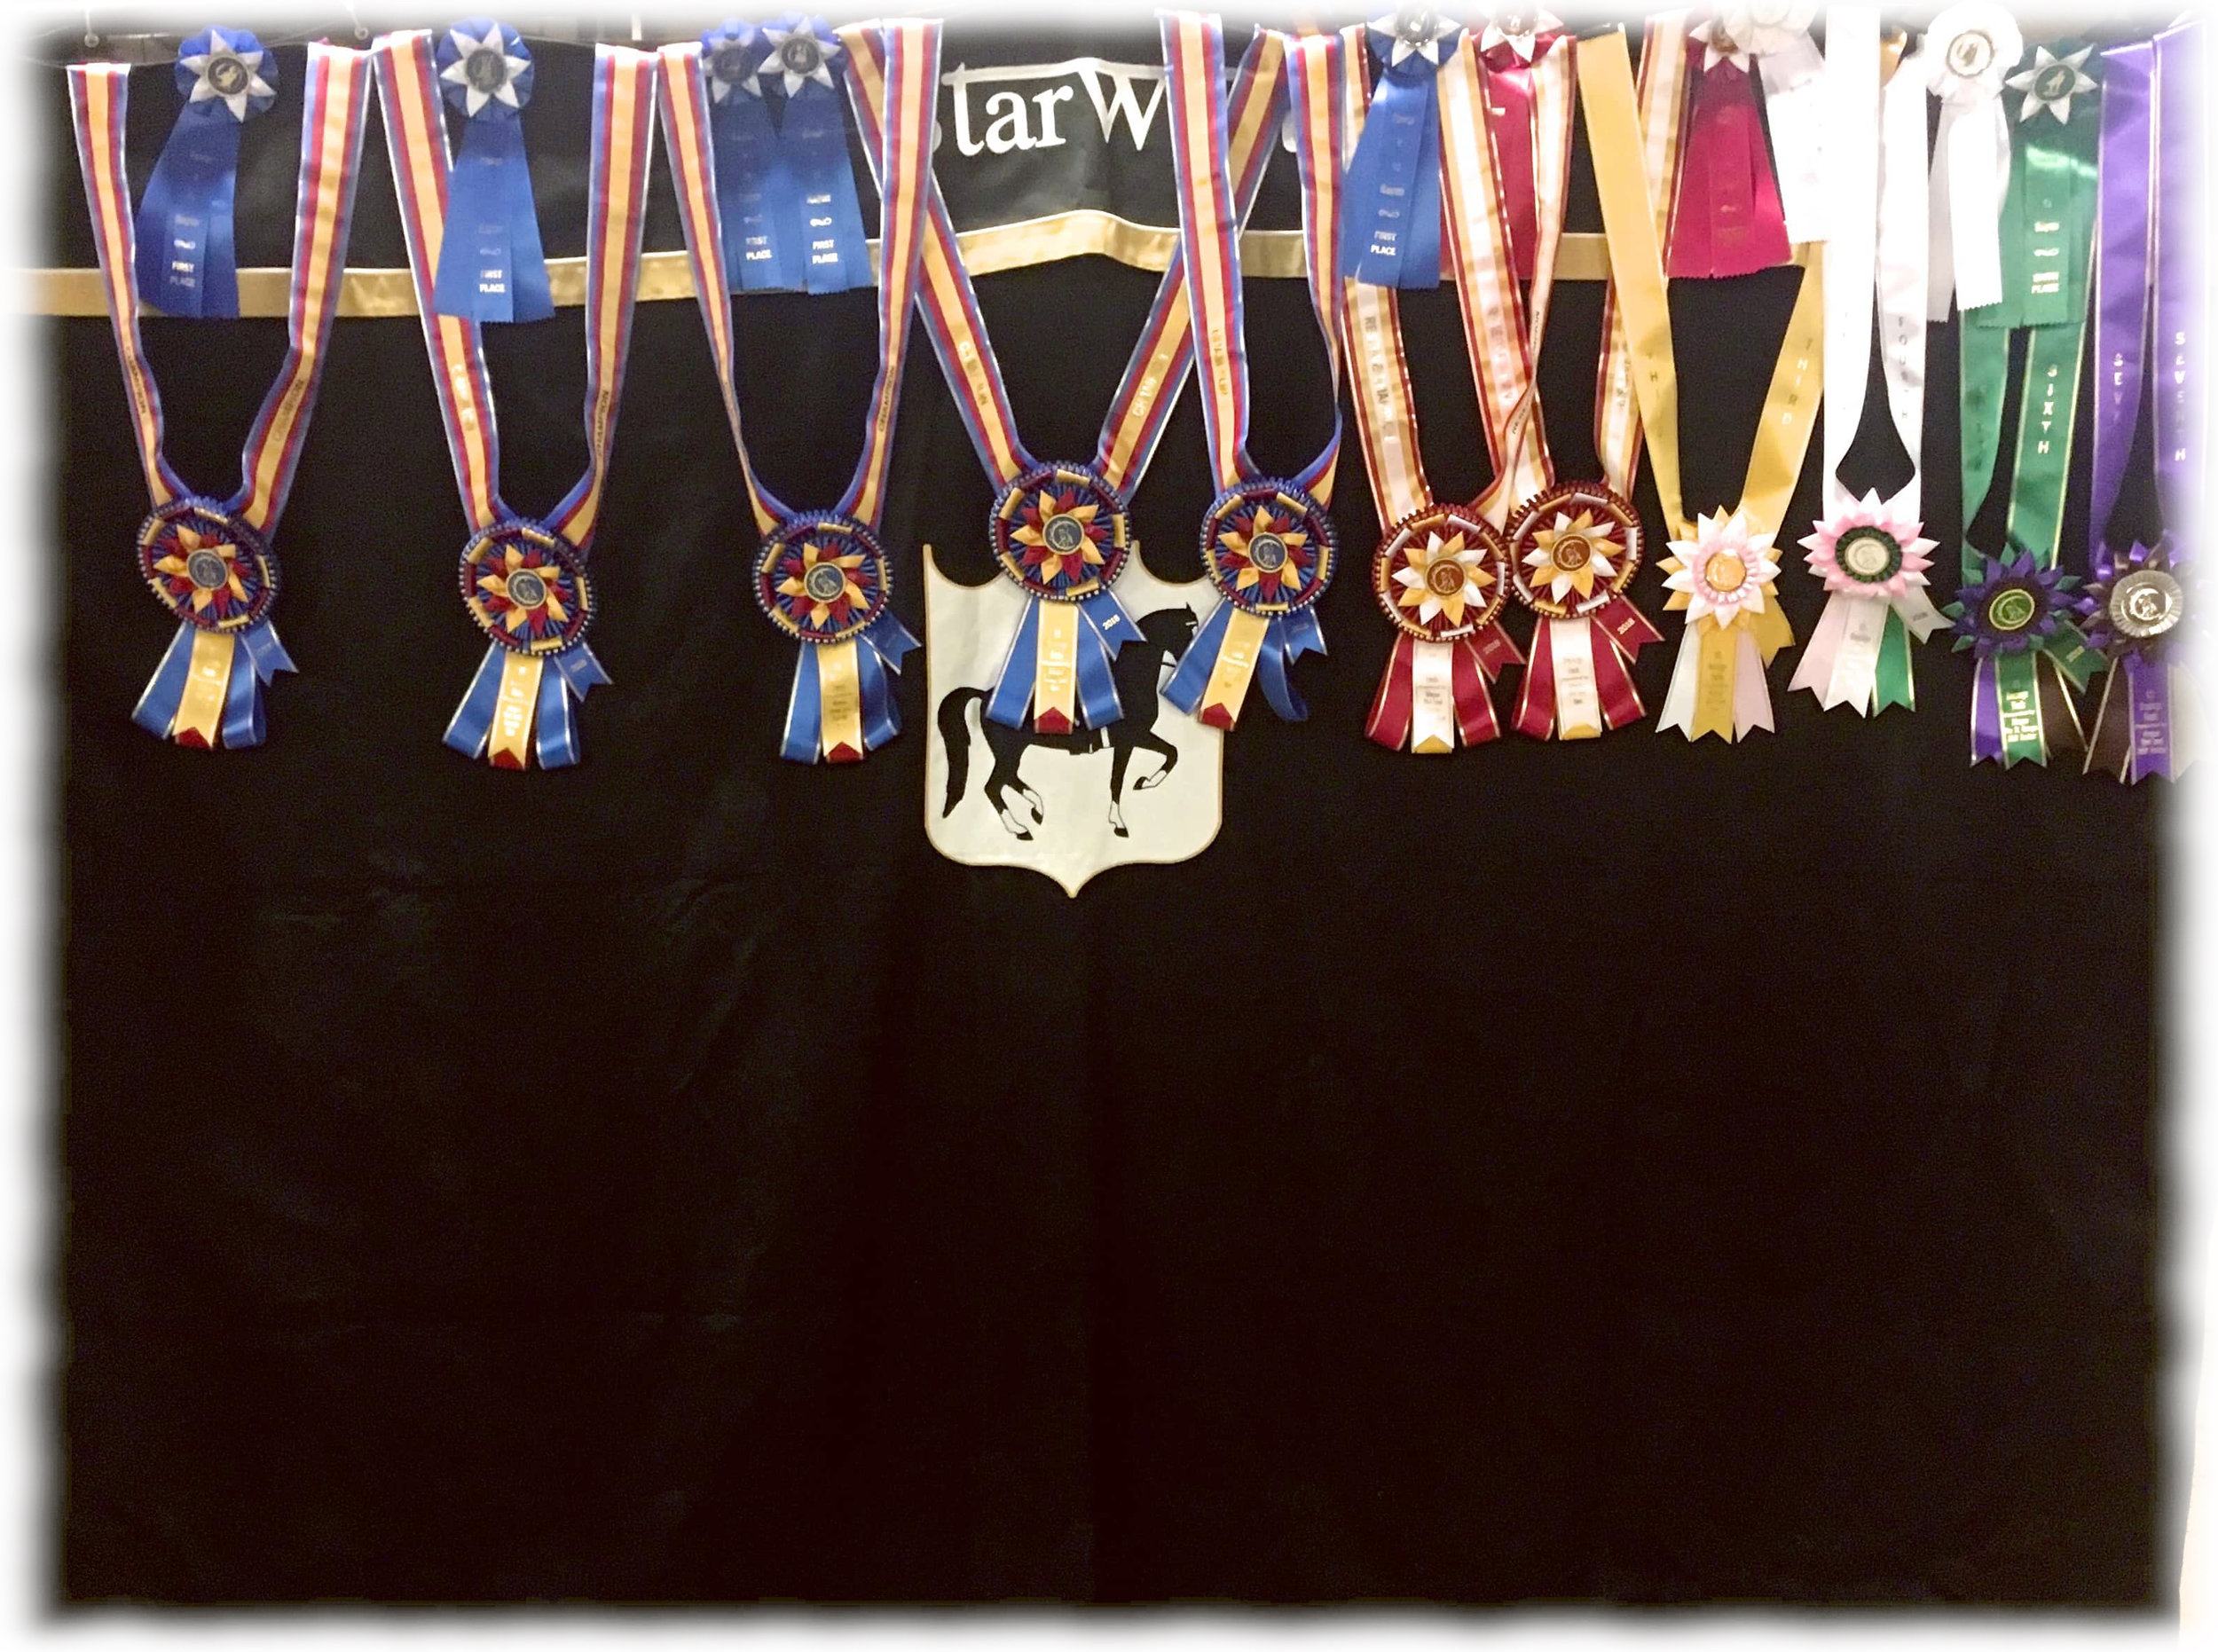 Most of the awards won by StarWest at Nationals 2018